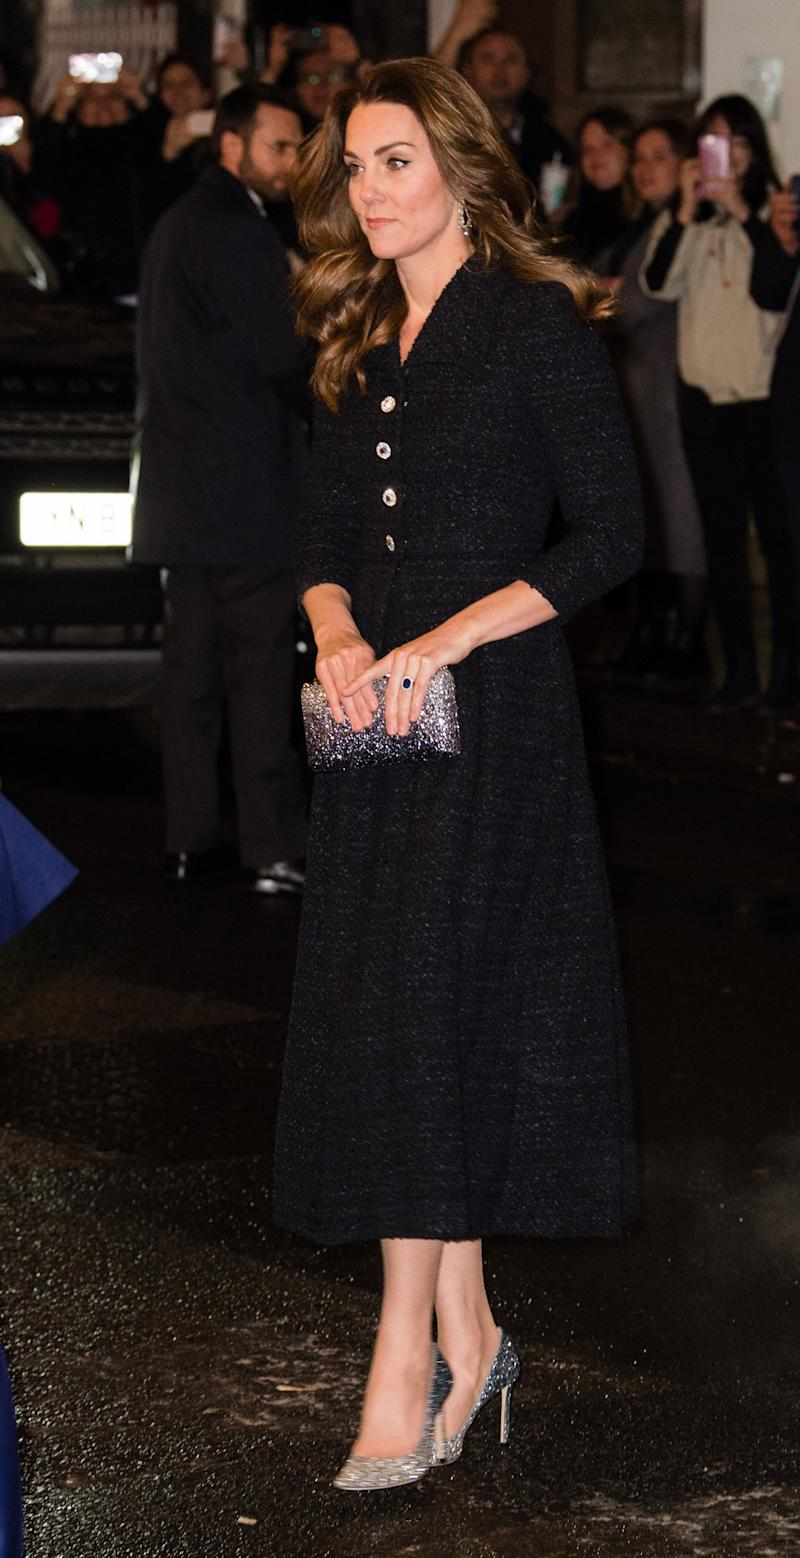 """LONDON, ENGLAND - FEBRUARY 25: Catherine, Duchess of Cambridge attends a charity performance of """"Dear Evan Hansen"""" in aid of The Royal Foundation at Noel Coward Theatre on February 25, 2020 in London, England. (Photo by Samir Hussein/WireImage)"""